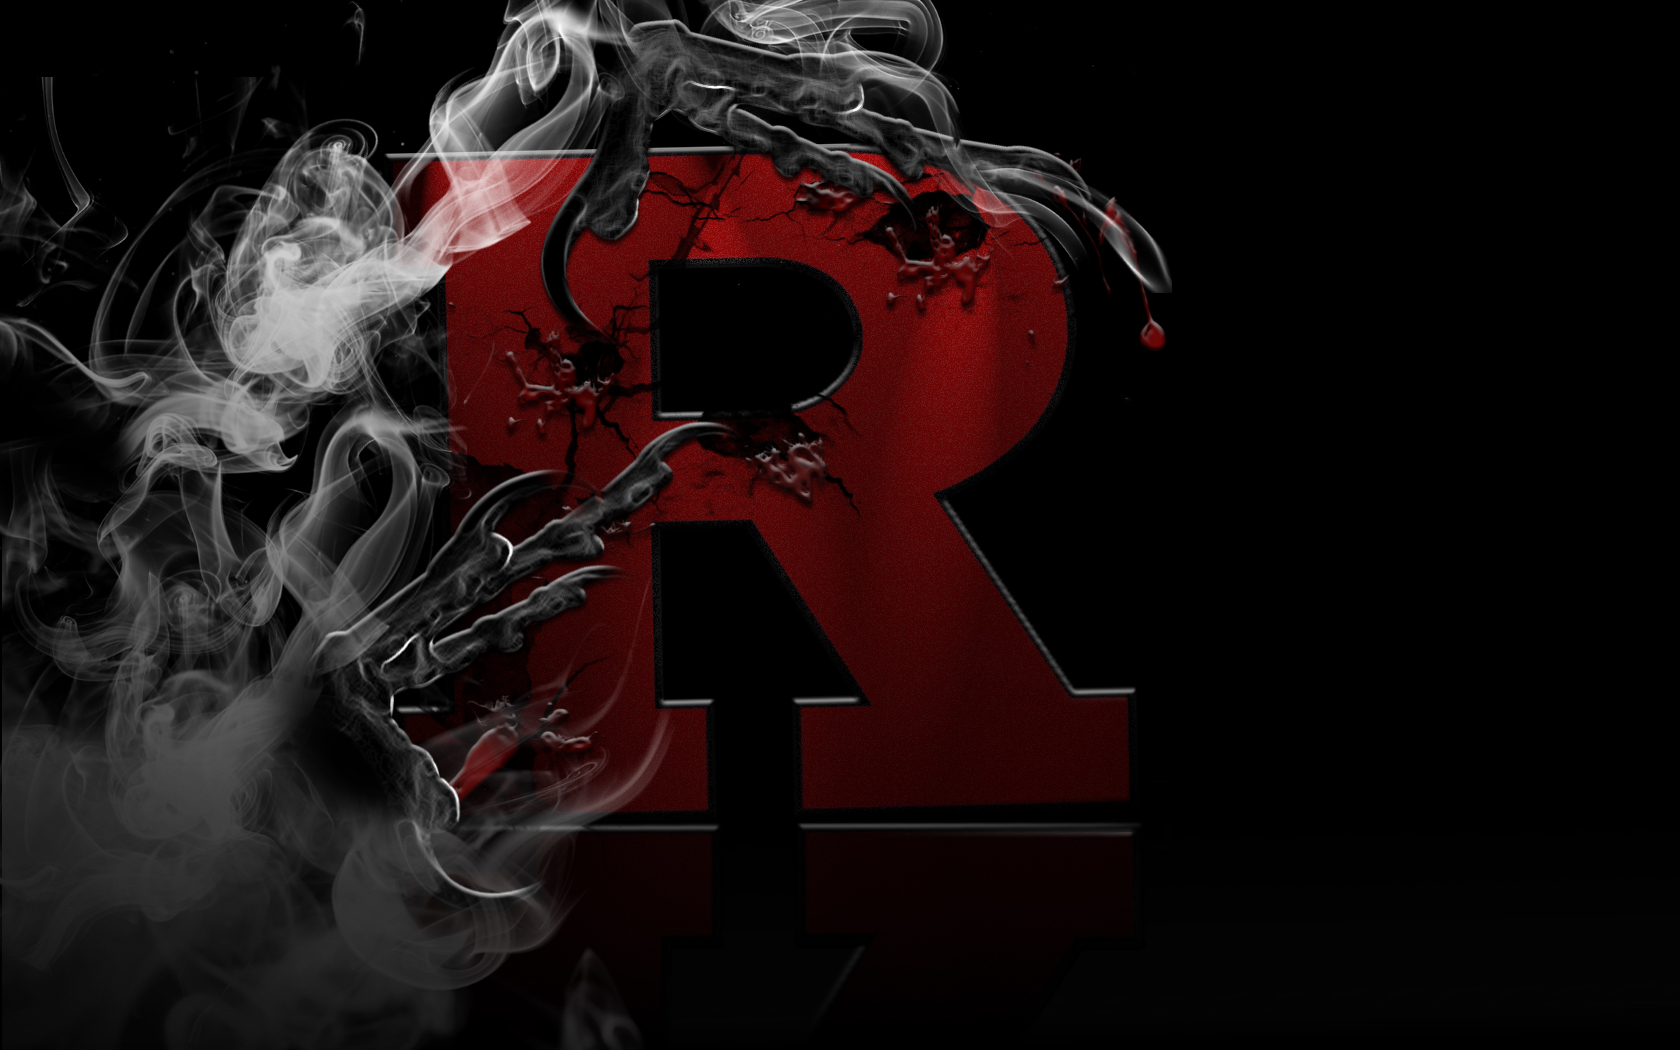 Only R Wallpapers HD Wallpapers 1680x1050